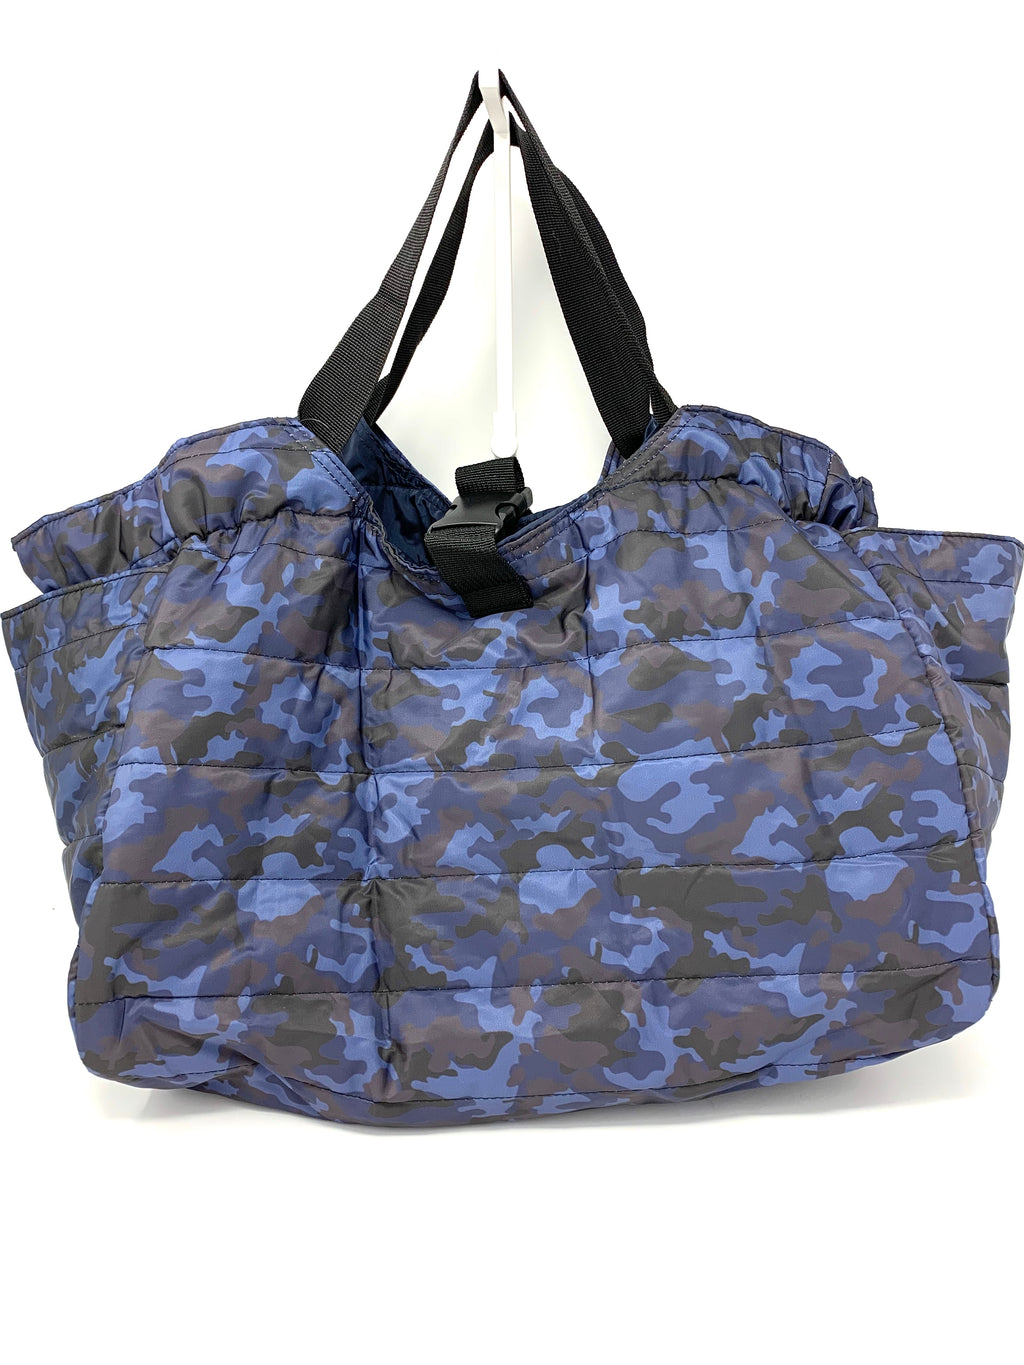 SALE! Camo Poufy Bag in Navy